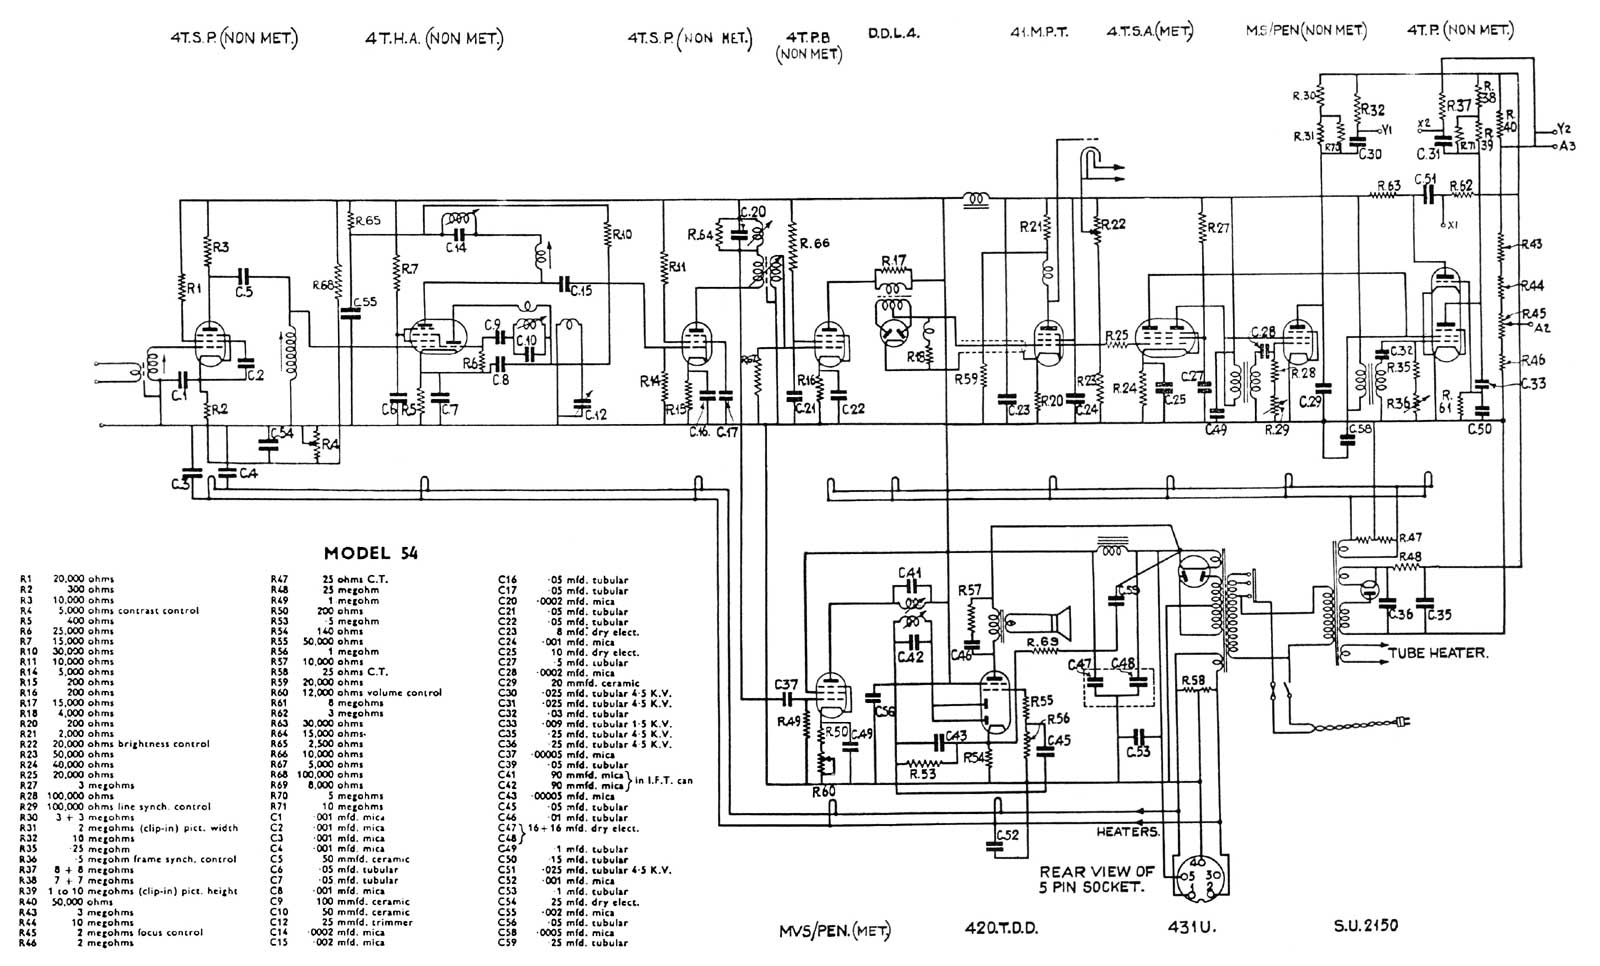 panasonic tv wiring diagrams ge tv schematic - easy-to-read wiring diagrams tv wiring diagrams #12